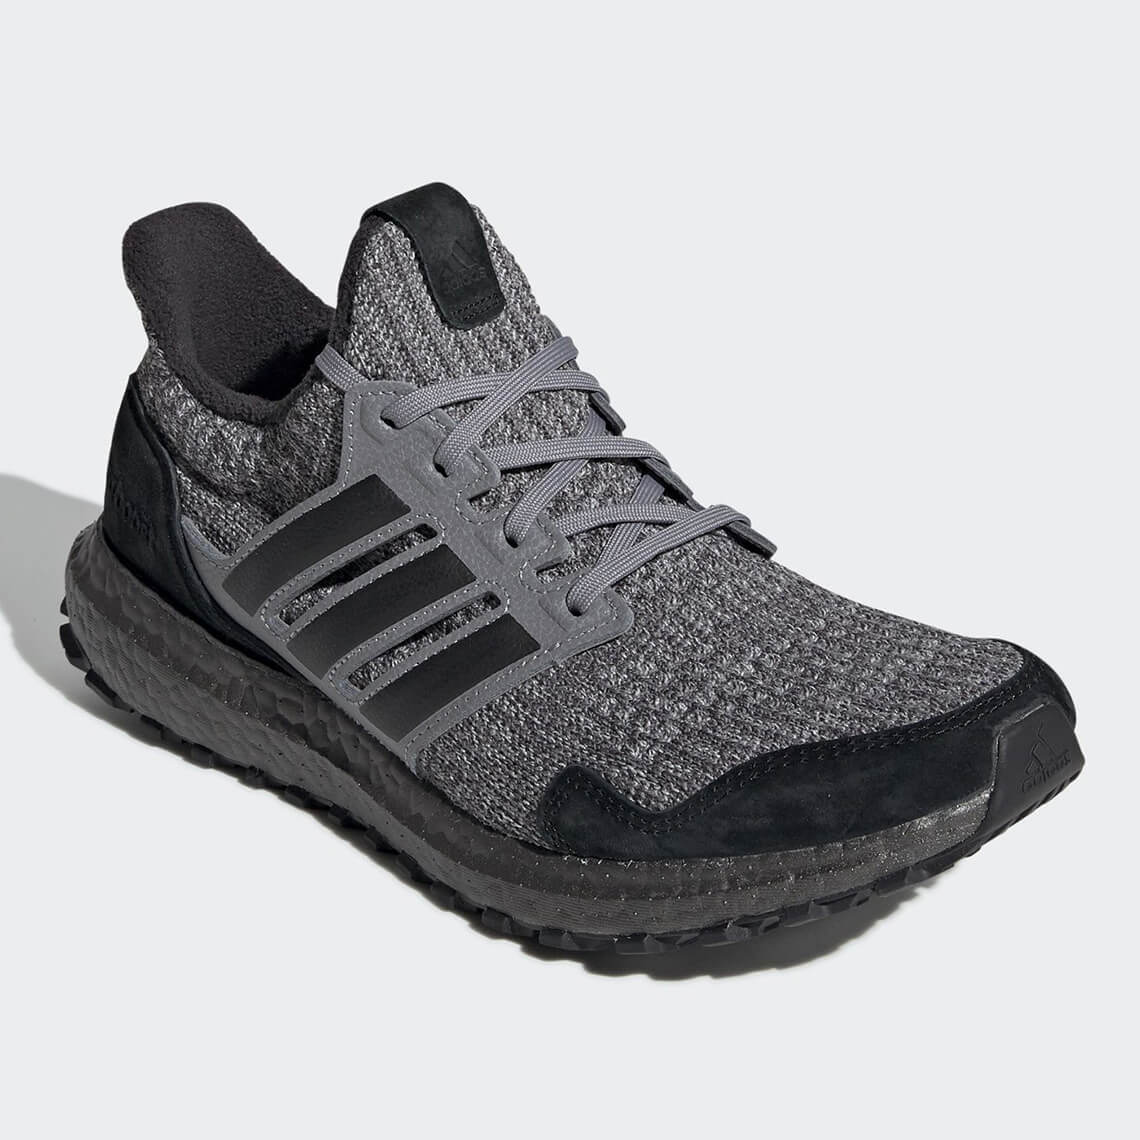 adidas ultra boost game of thrones house stark EE3706 6